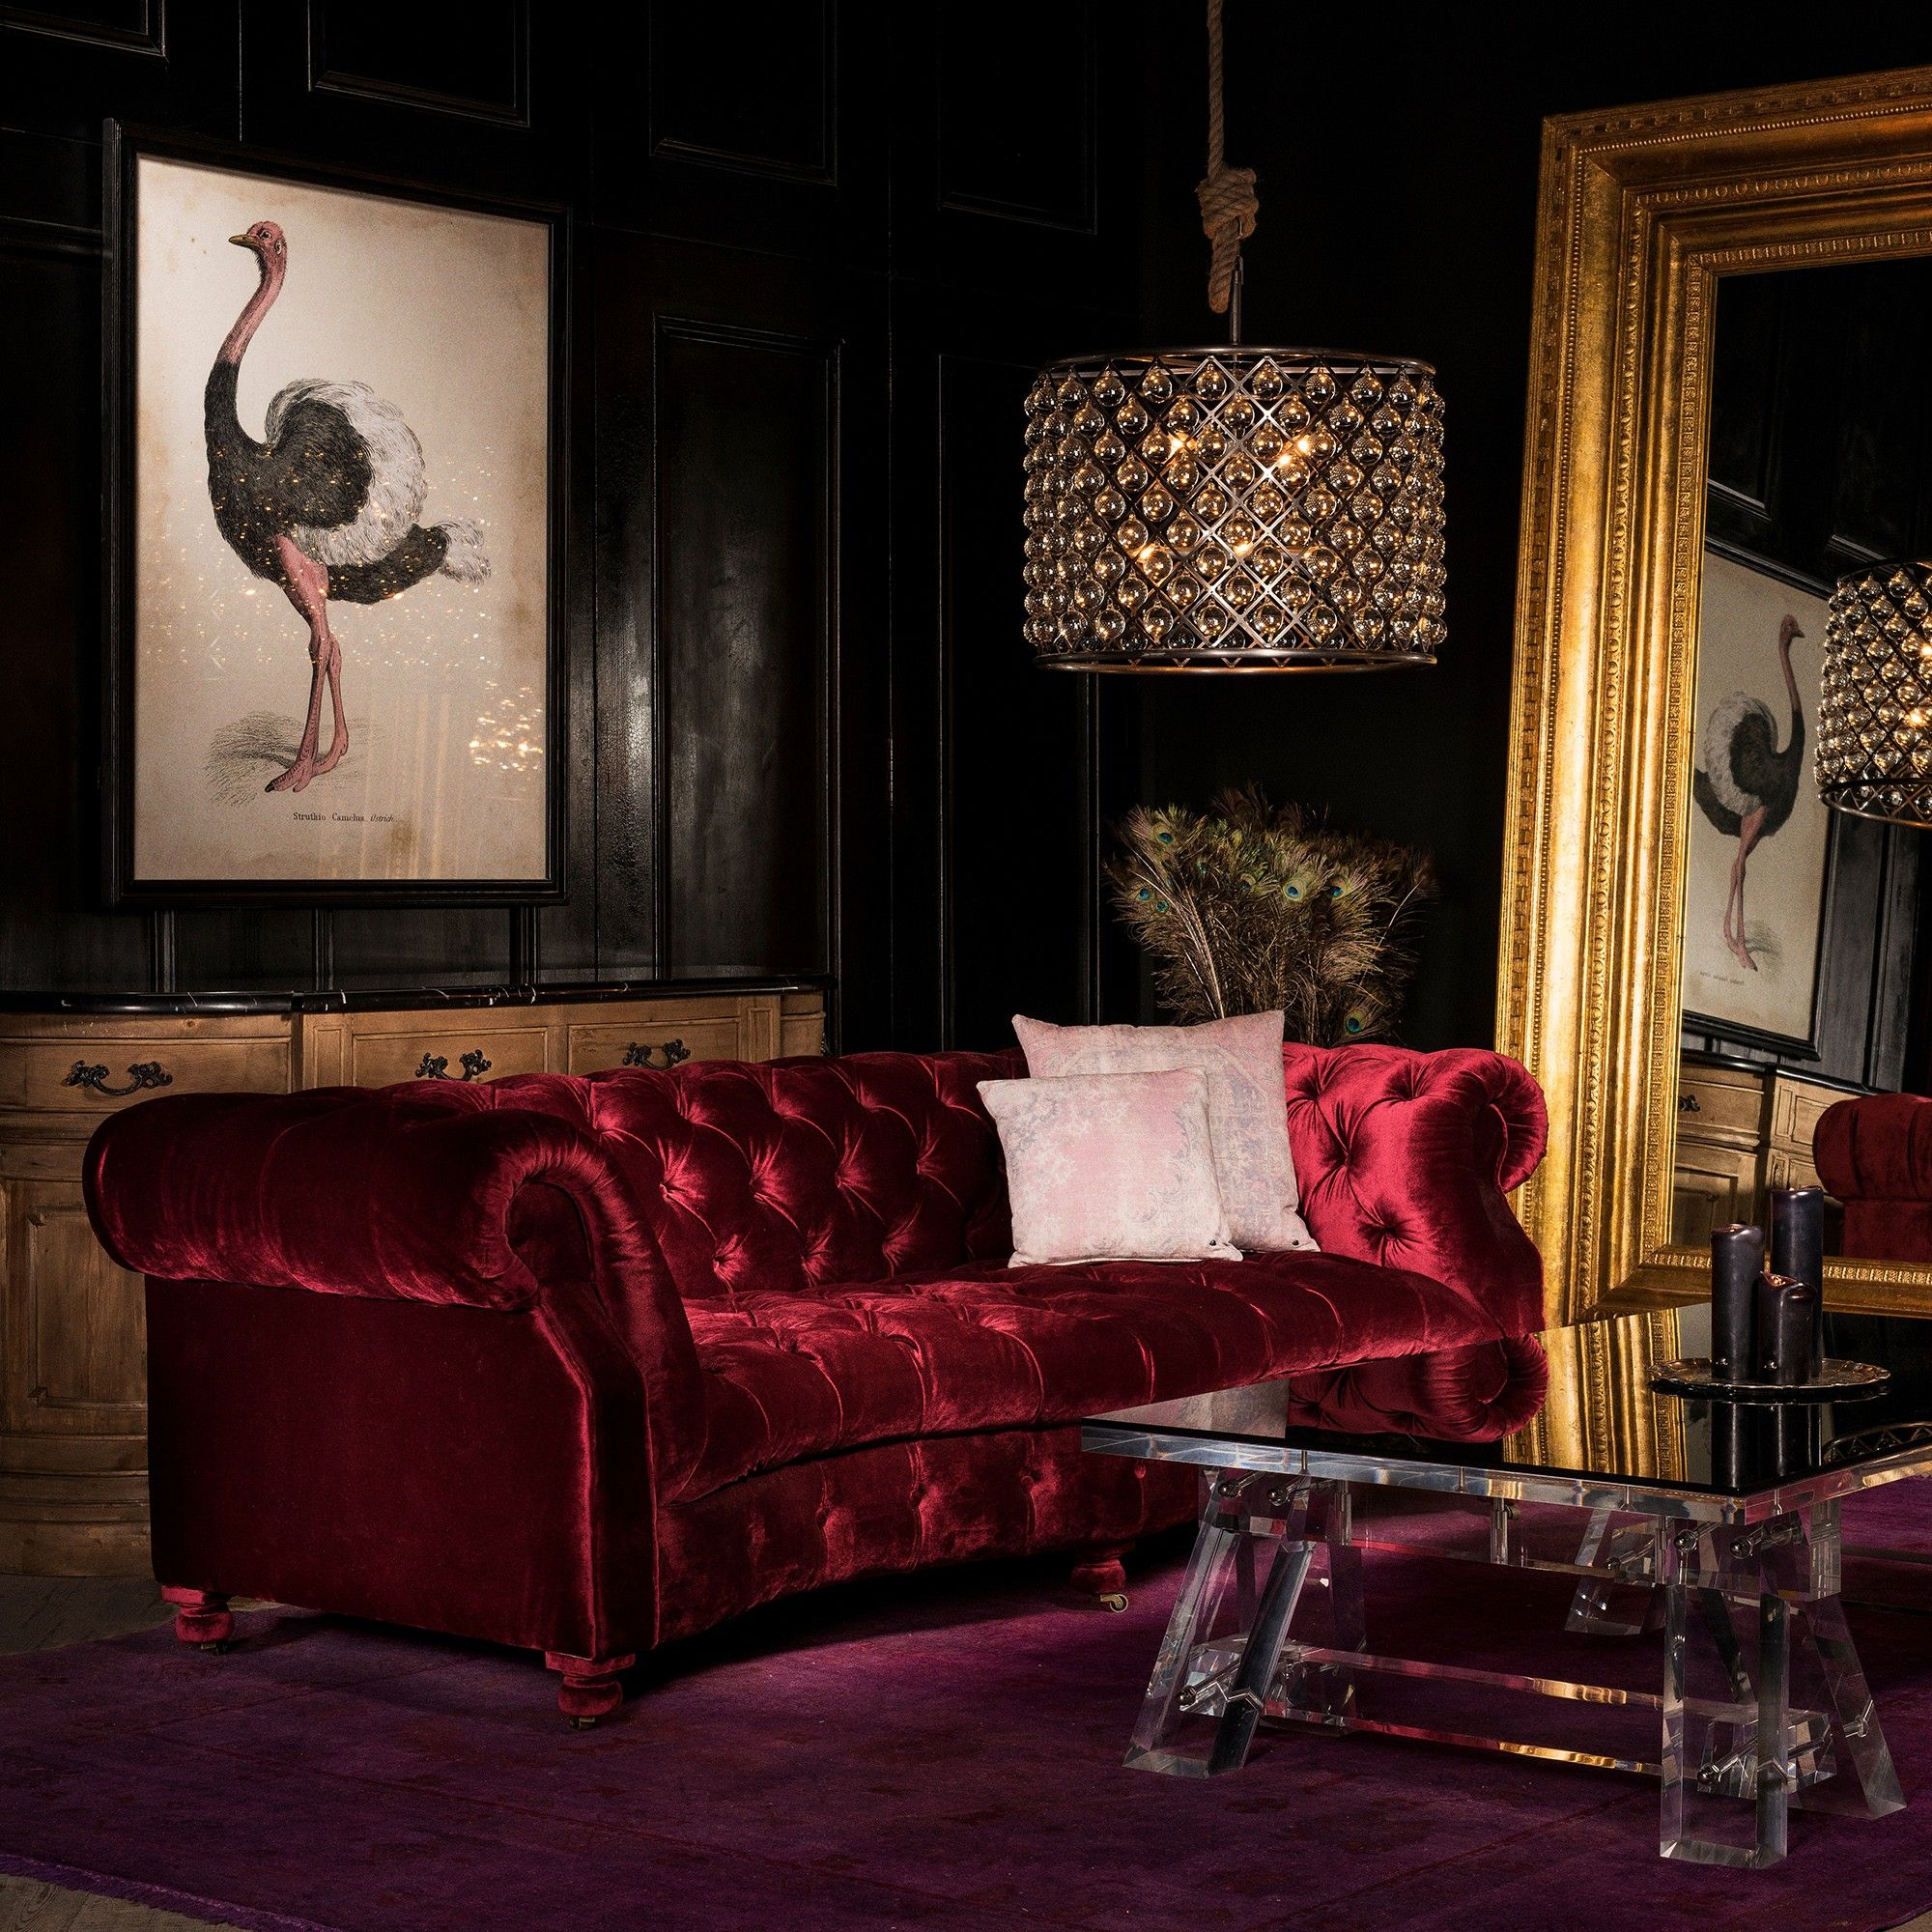 The Serpentine Sofa By Timothy Oulton Upholstered In Luxurious Siren Dusk Velvet Is An Opulent Addi Living Room Decor Cozy Living Room Red Interior Furniture